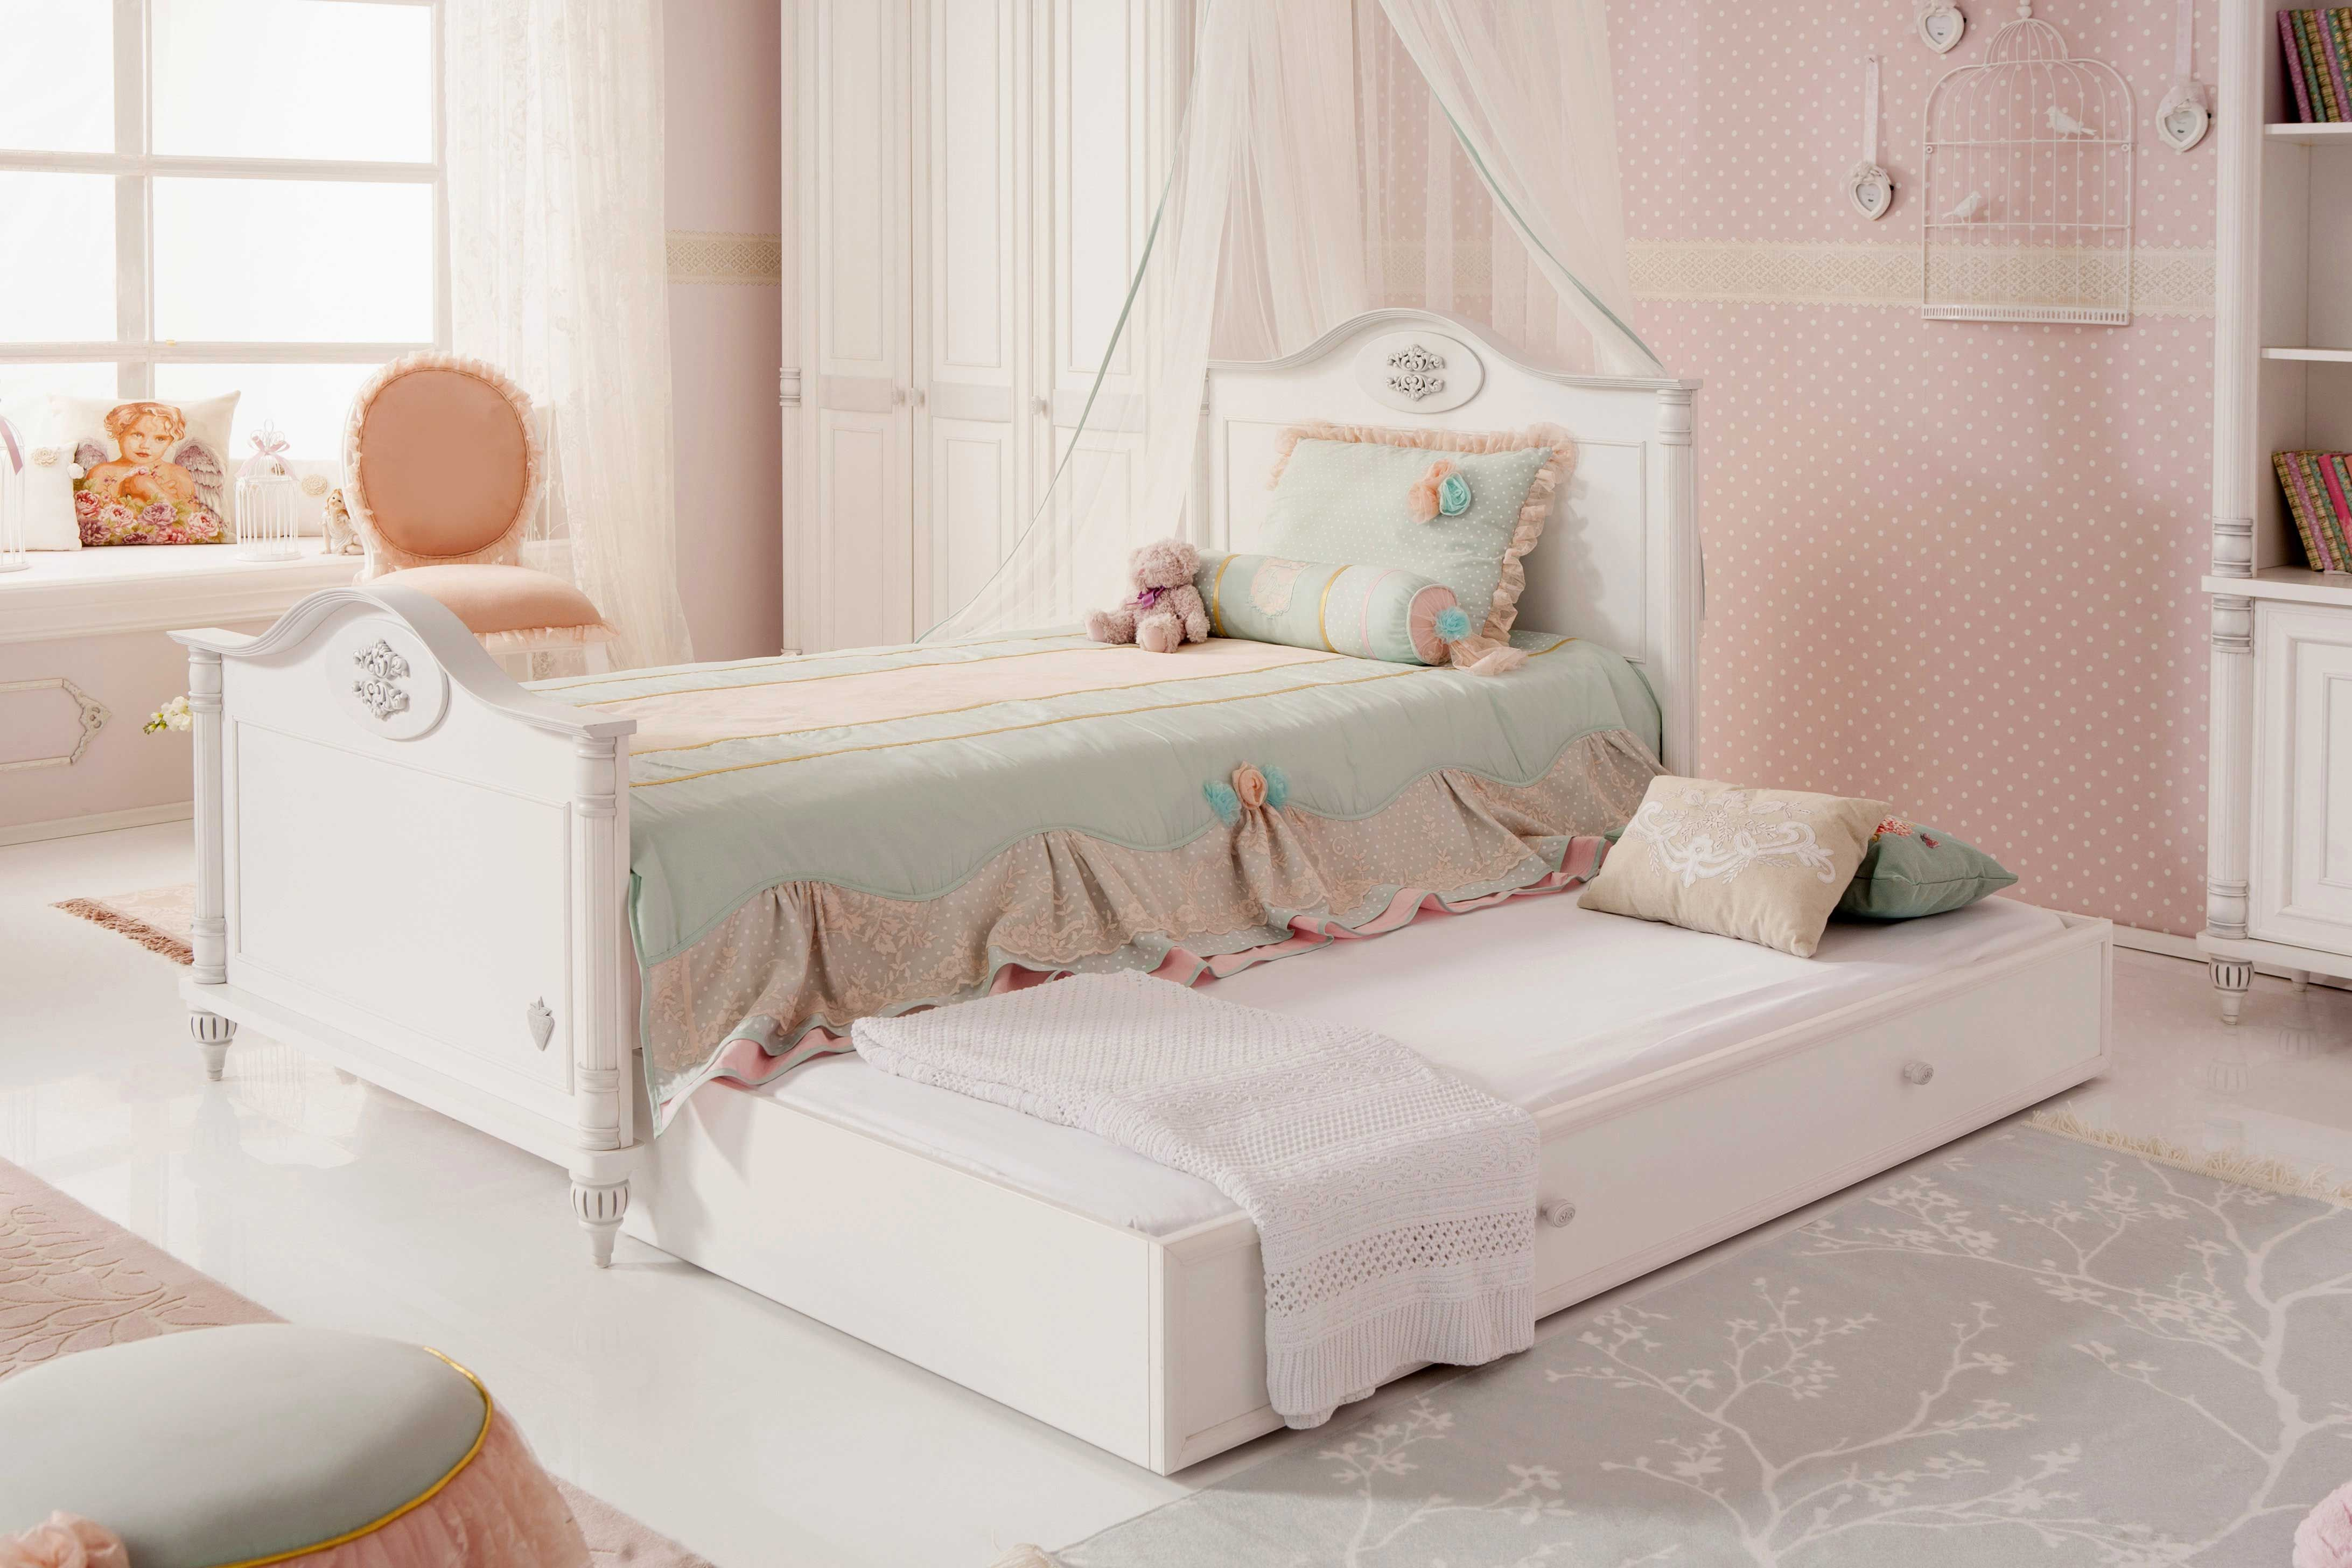 cilek romantic kinderbett mit g stebett kinderbetten. Black Bedroom Furniture Sets. Home Design Ideas